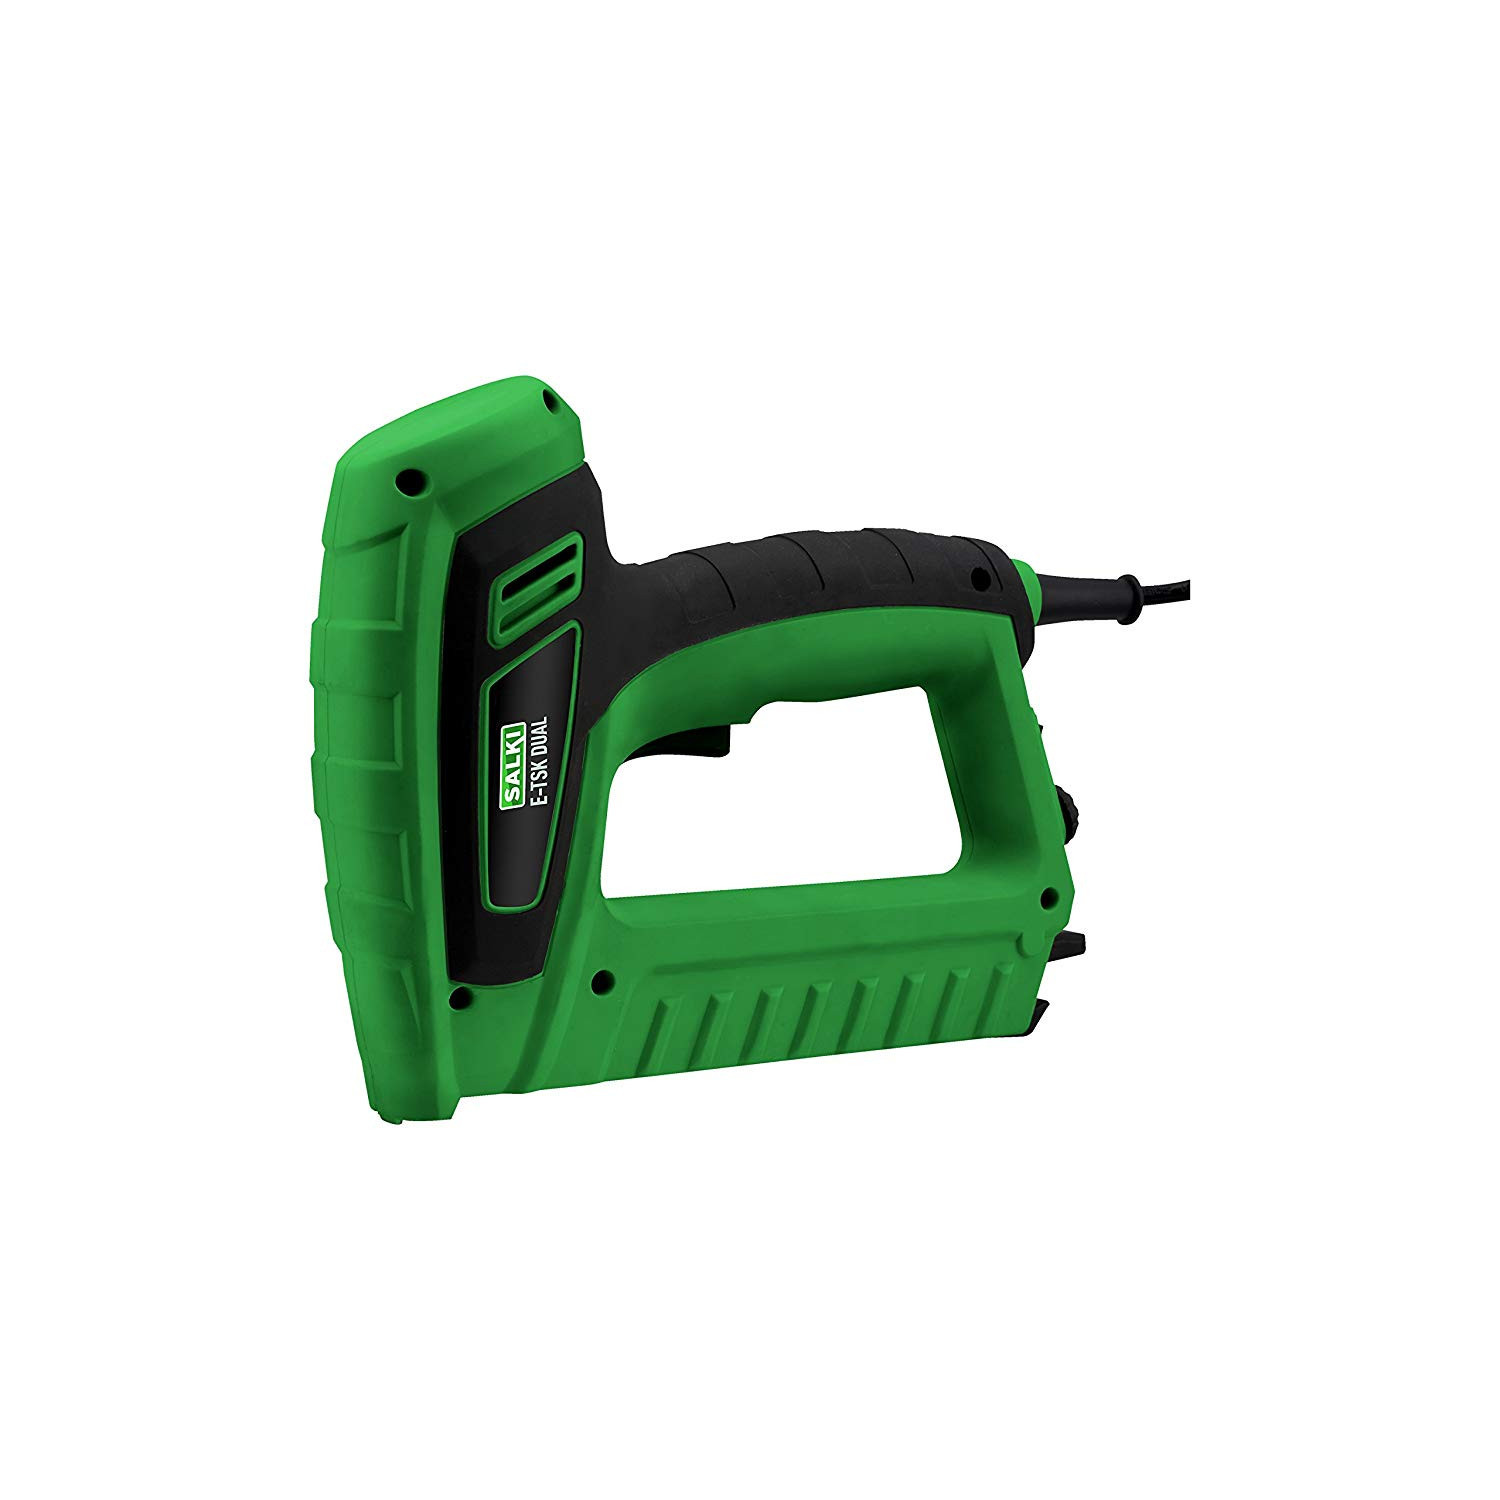 Nailer Stapler Electric Dual E-tsk 86700316